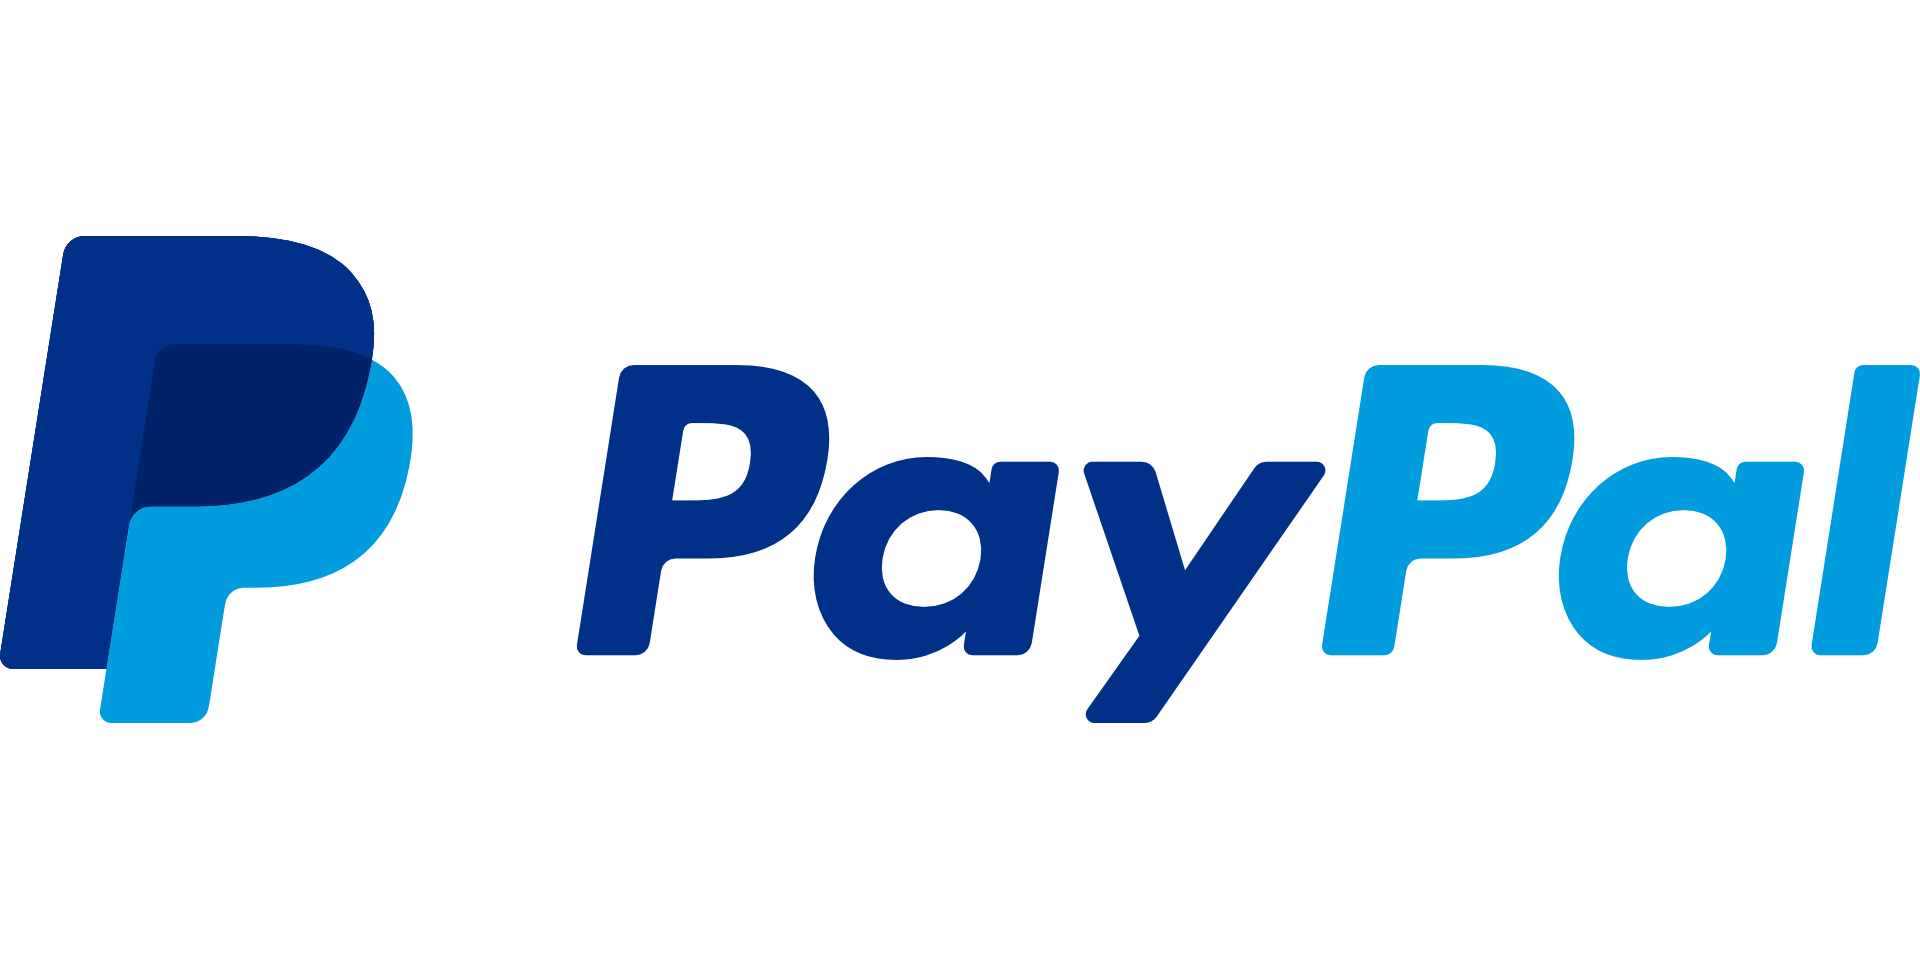 How To Use PayPal Ghana: The Ultimate Guide to PayPal in Ghana create a PayPal account in Ghana.